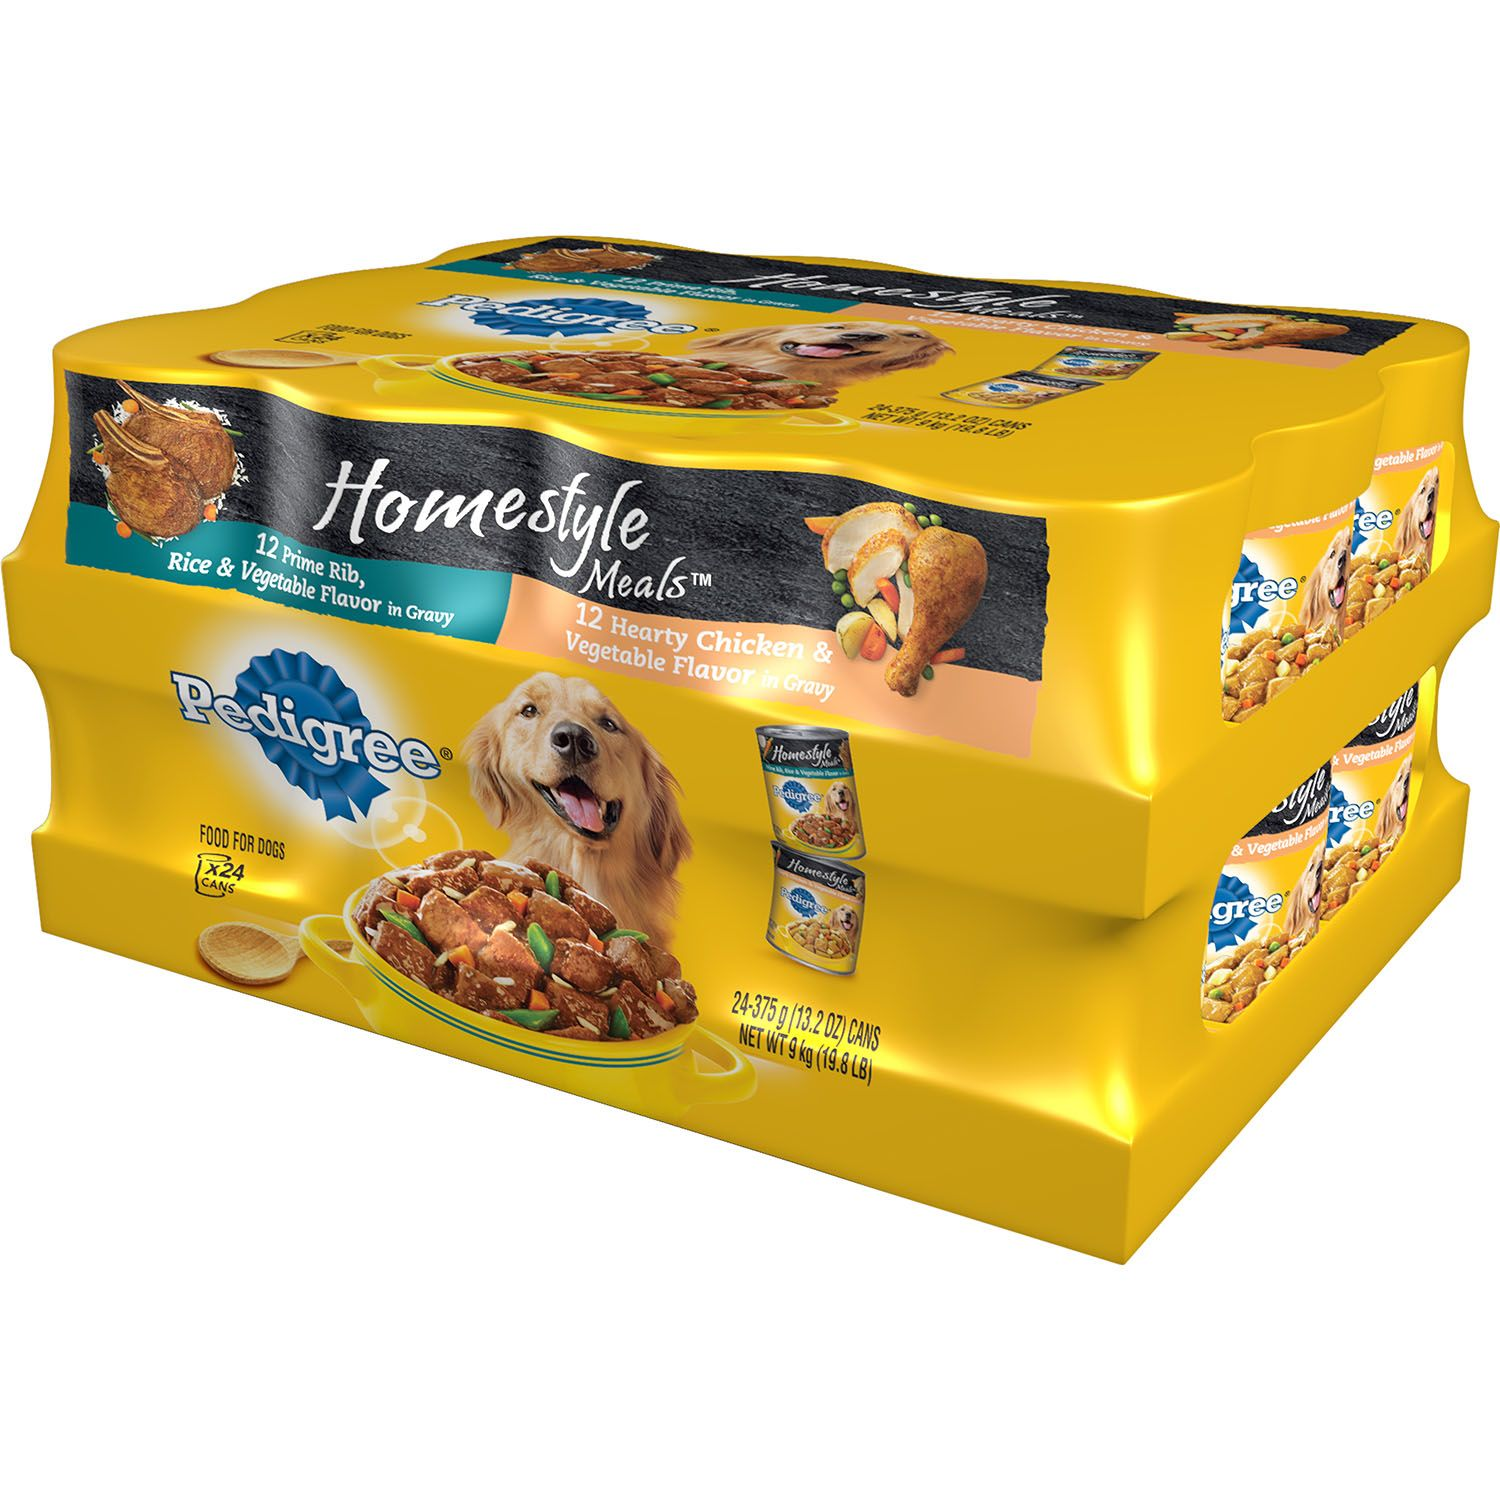 Pedigree Homestyle Meals Prime Rib, Rice, & Vegetables in Gravy and Hearty Chicken & Vegetables in Gravy Wet Dog Food, 13.2 Oz (24 Count)